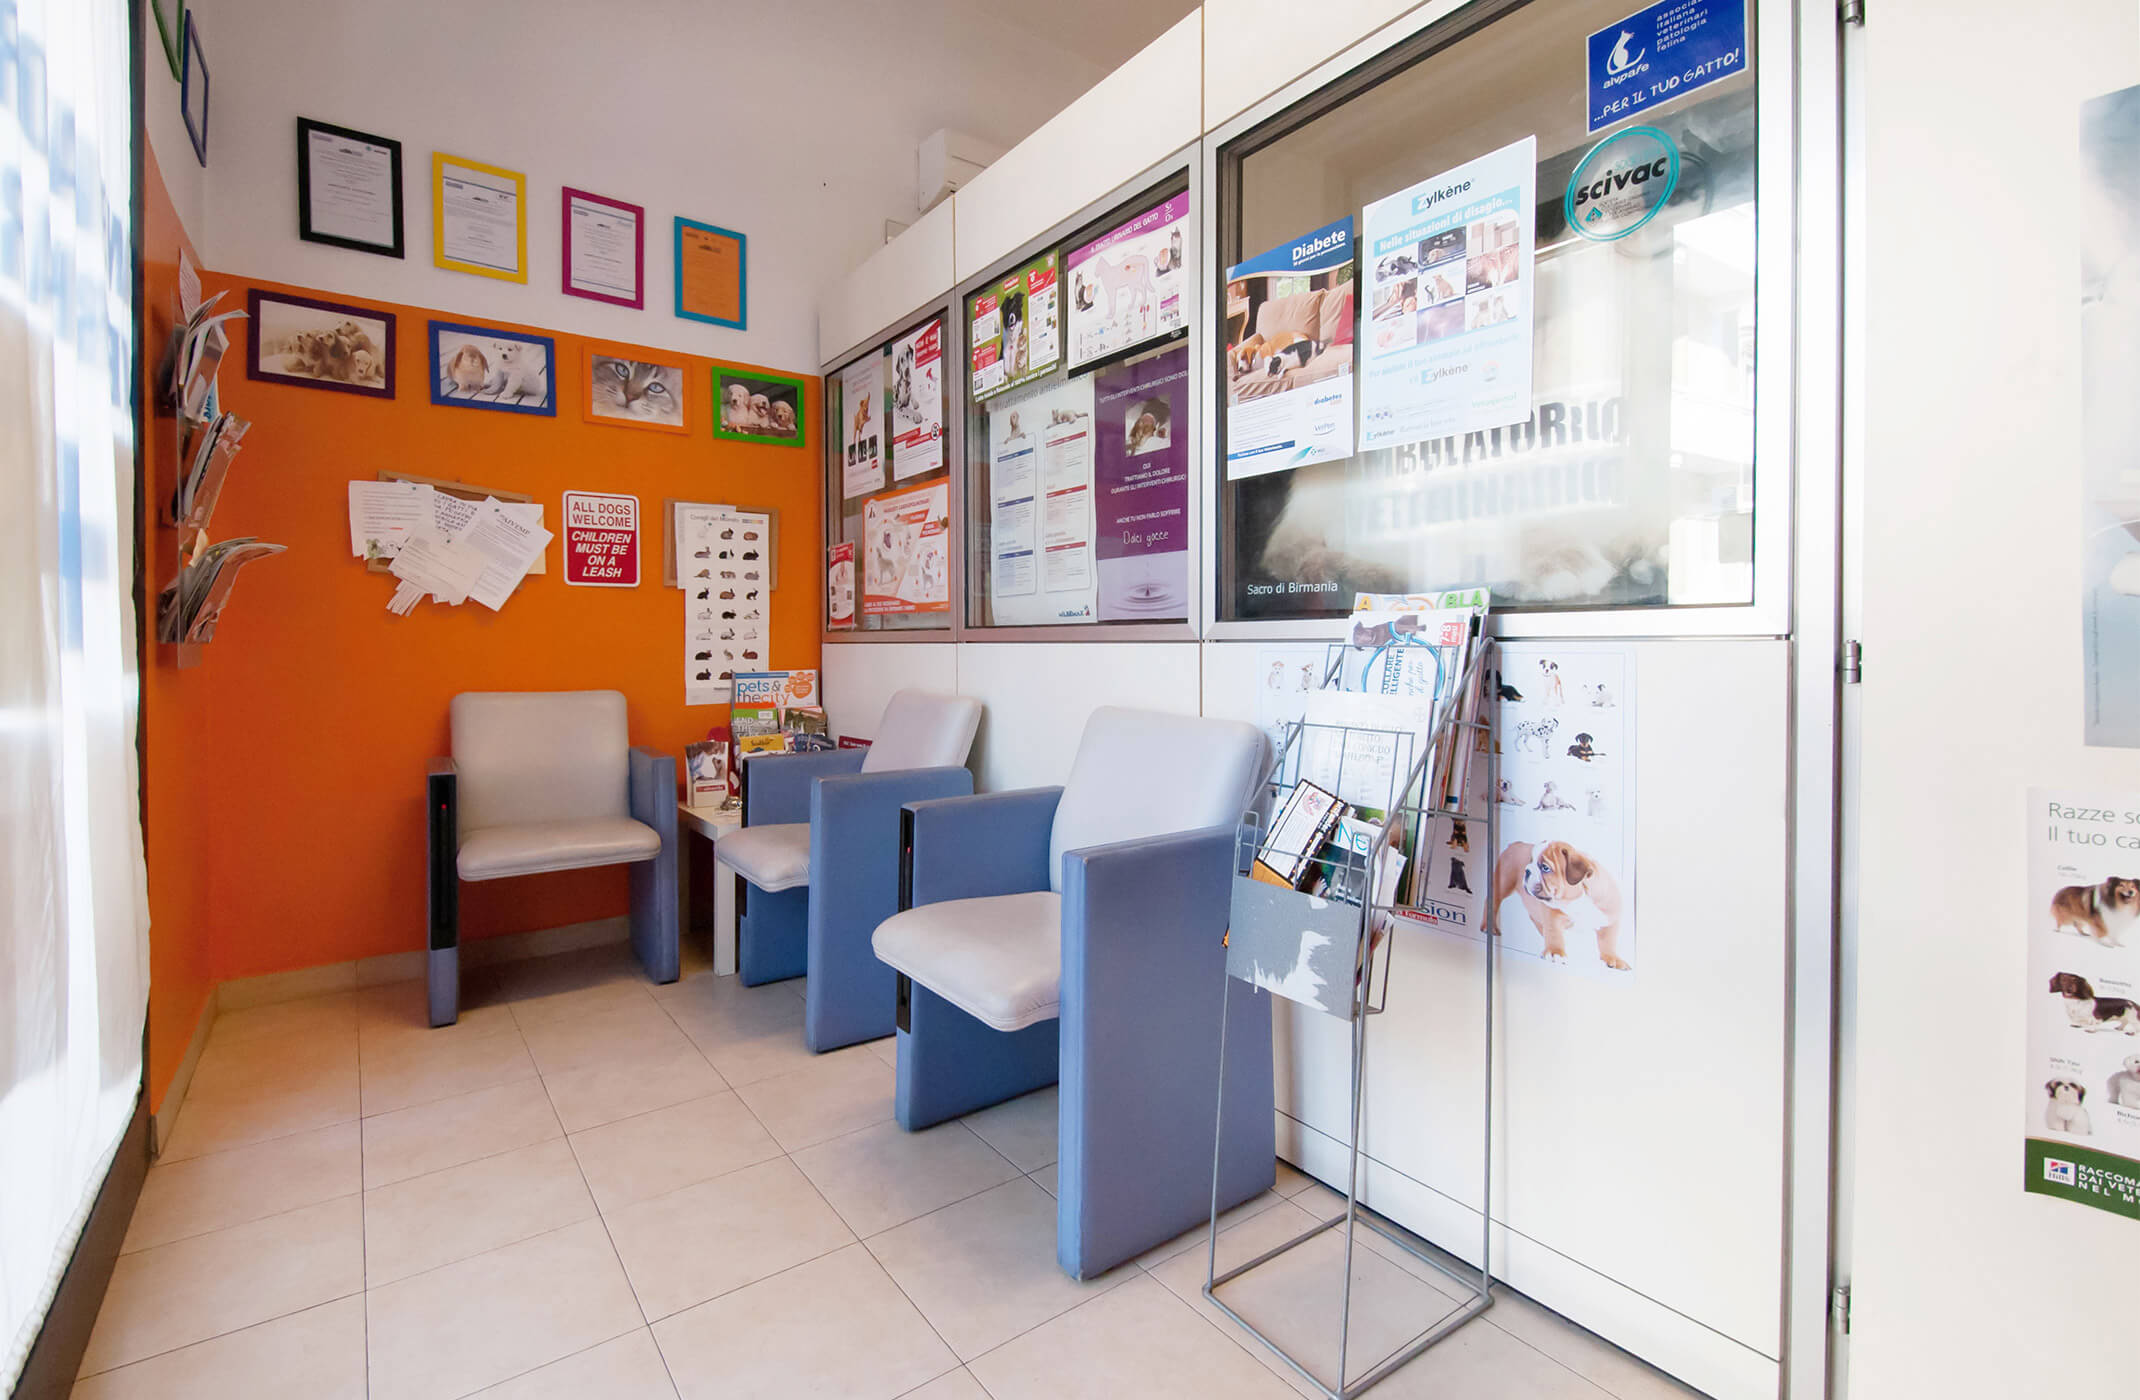 Sala d'attesa ambulatorio veterinario via Bondi